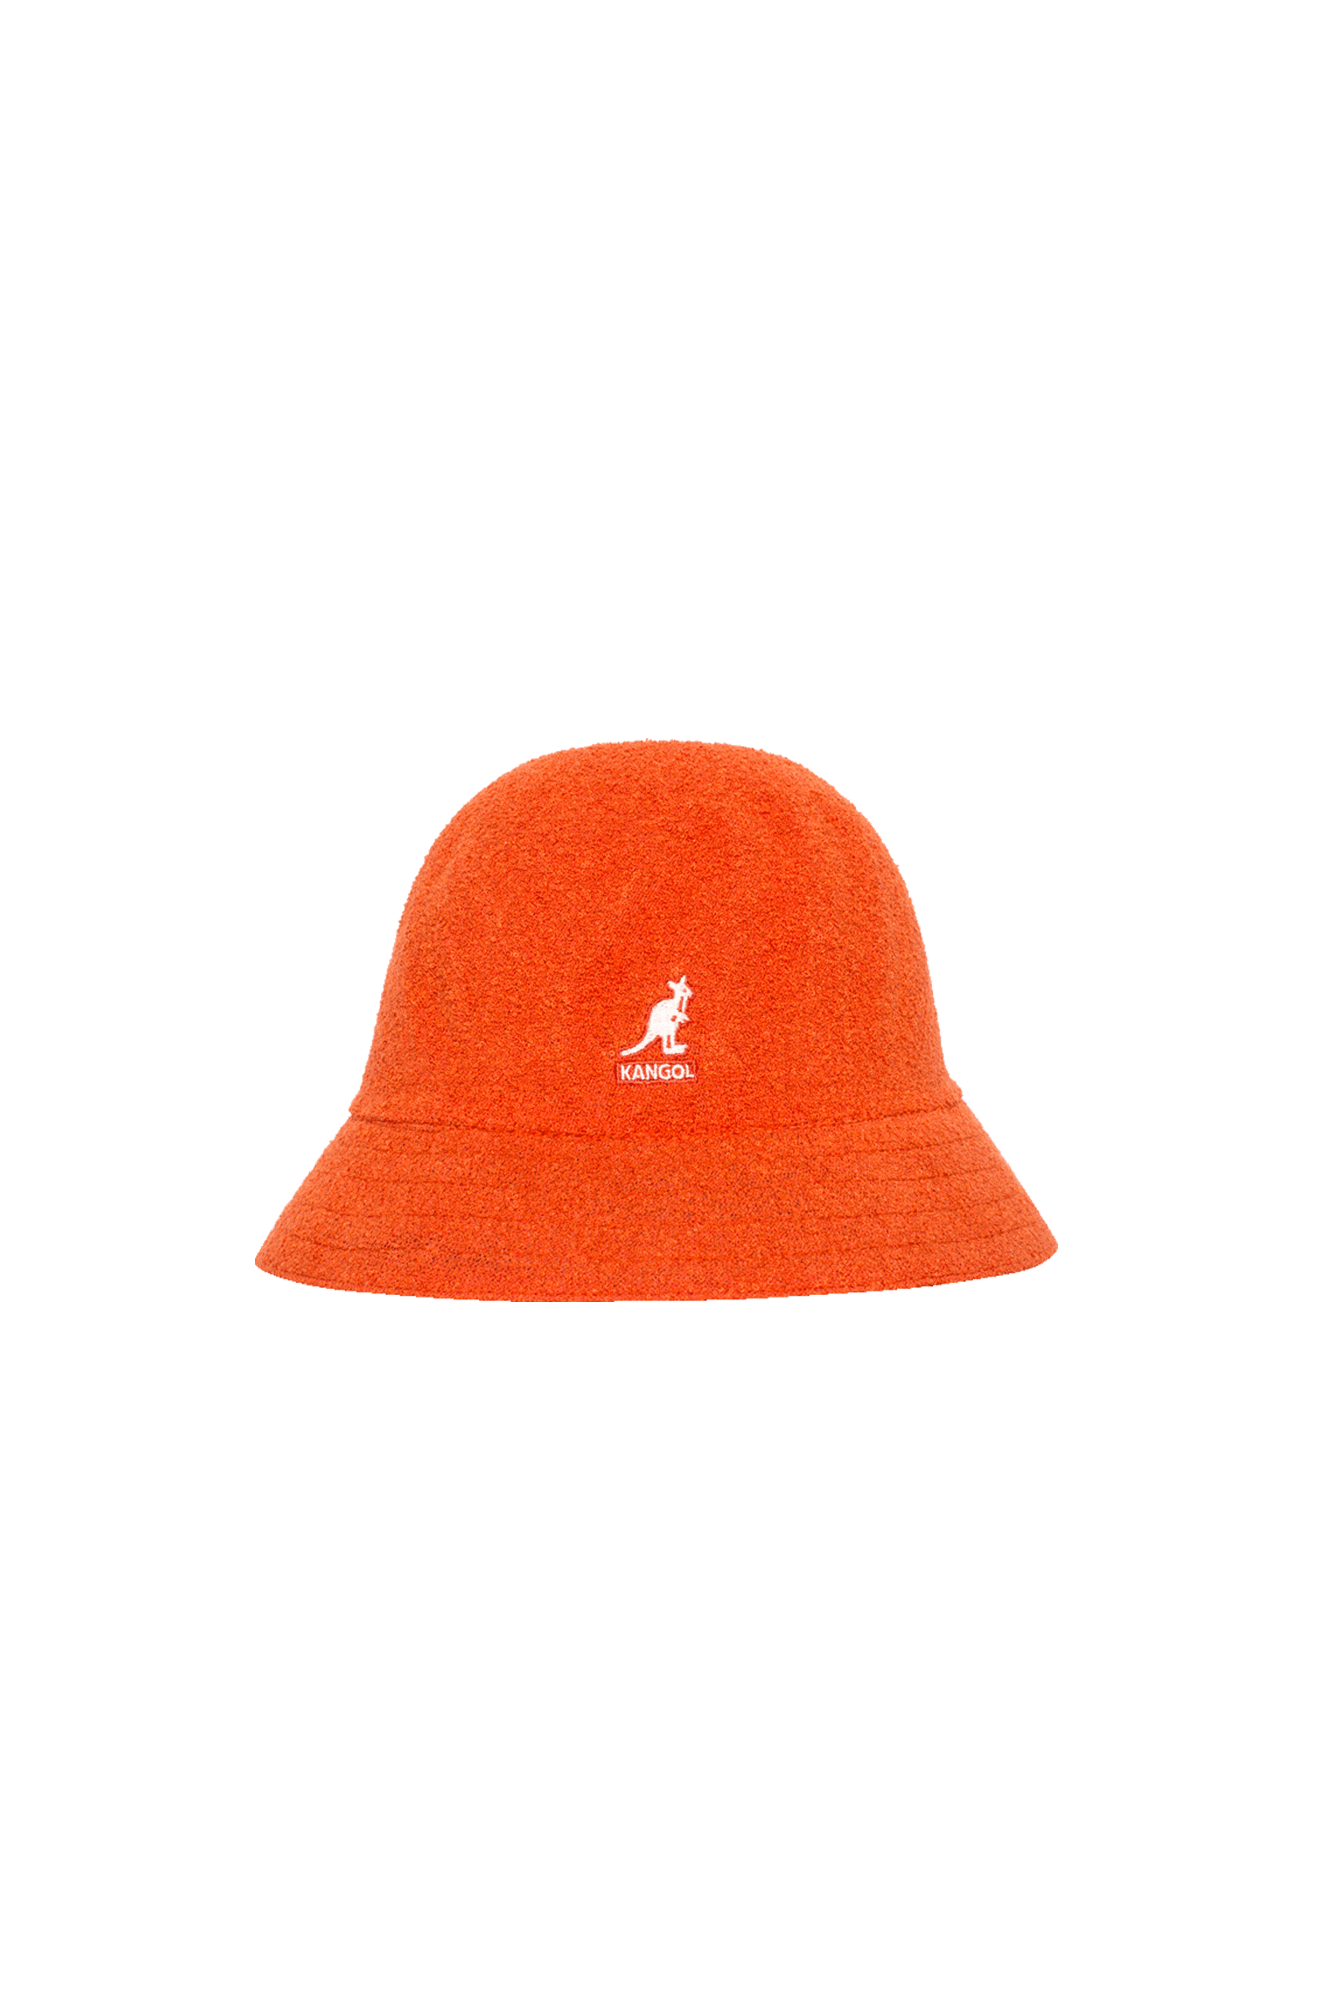 Kangol Hats Bermuda Casual Orange 0397BC#000#ORNG#M - One Block Down